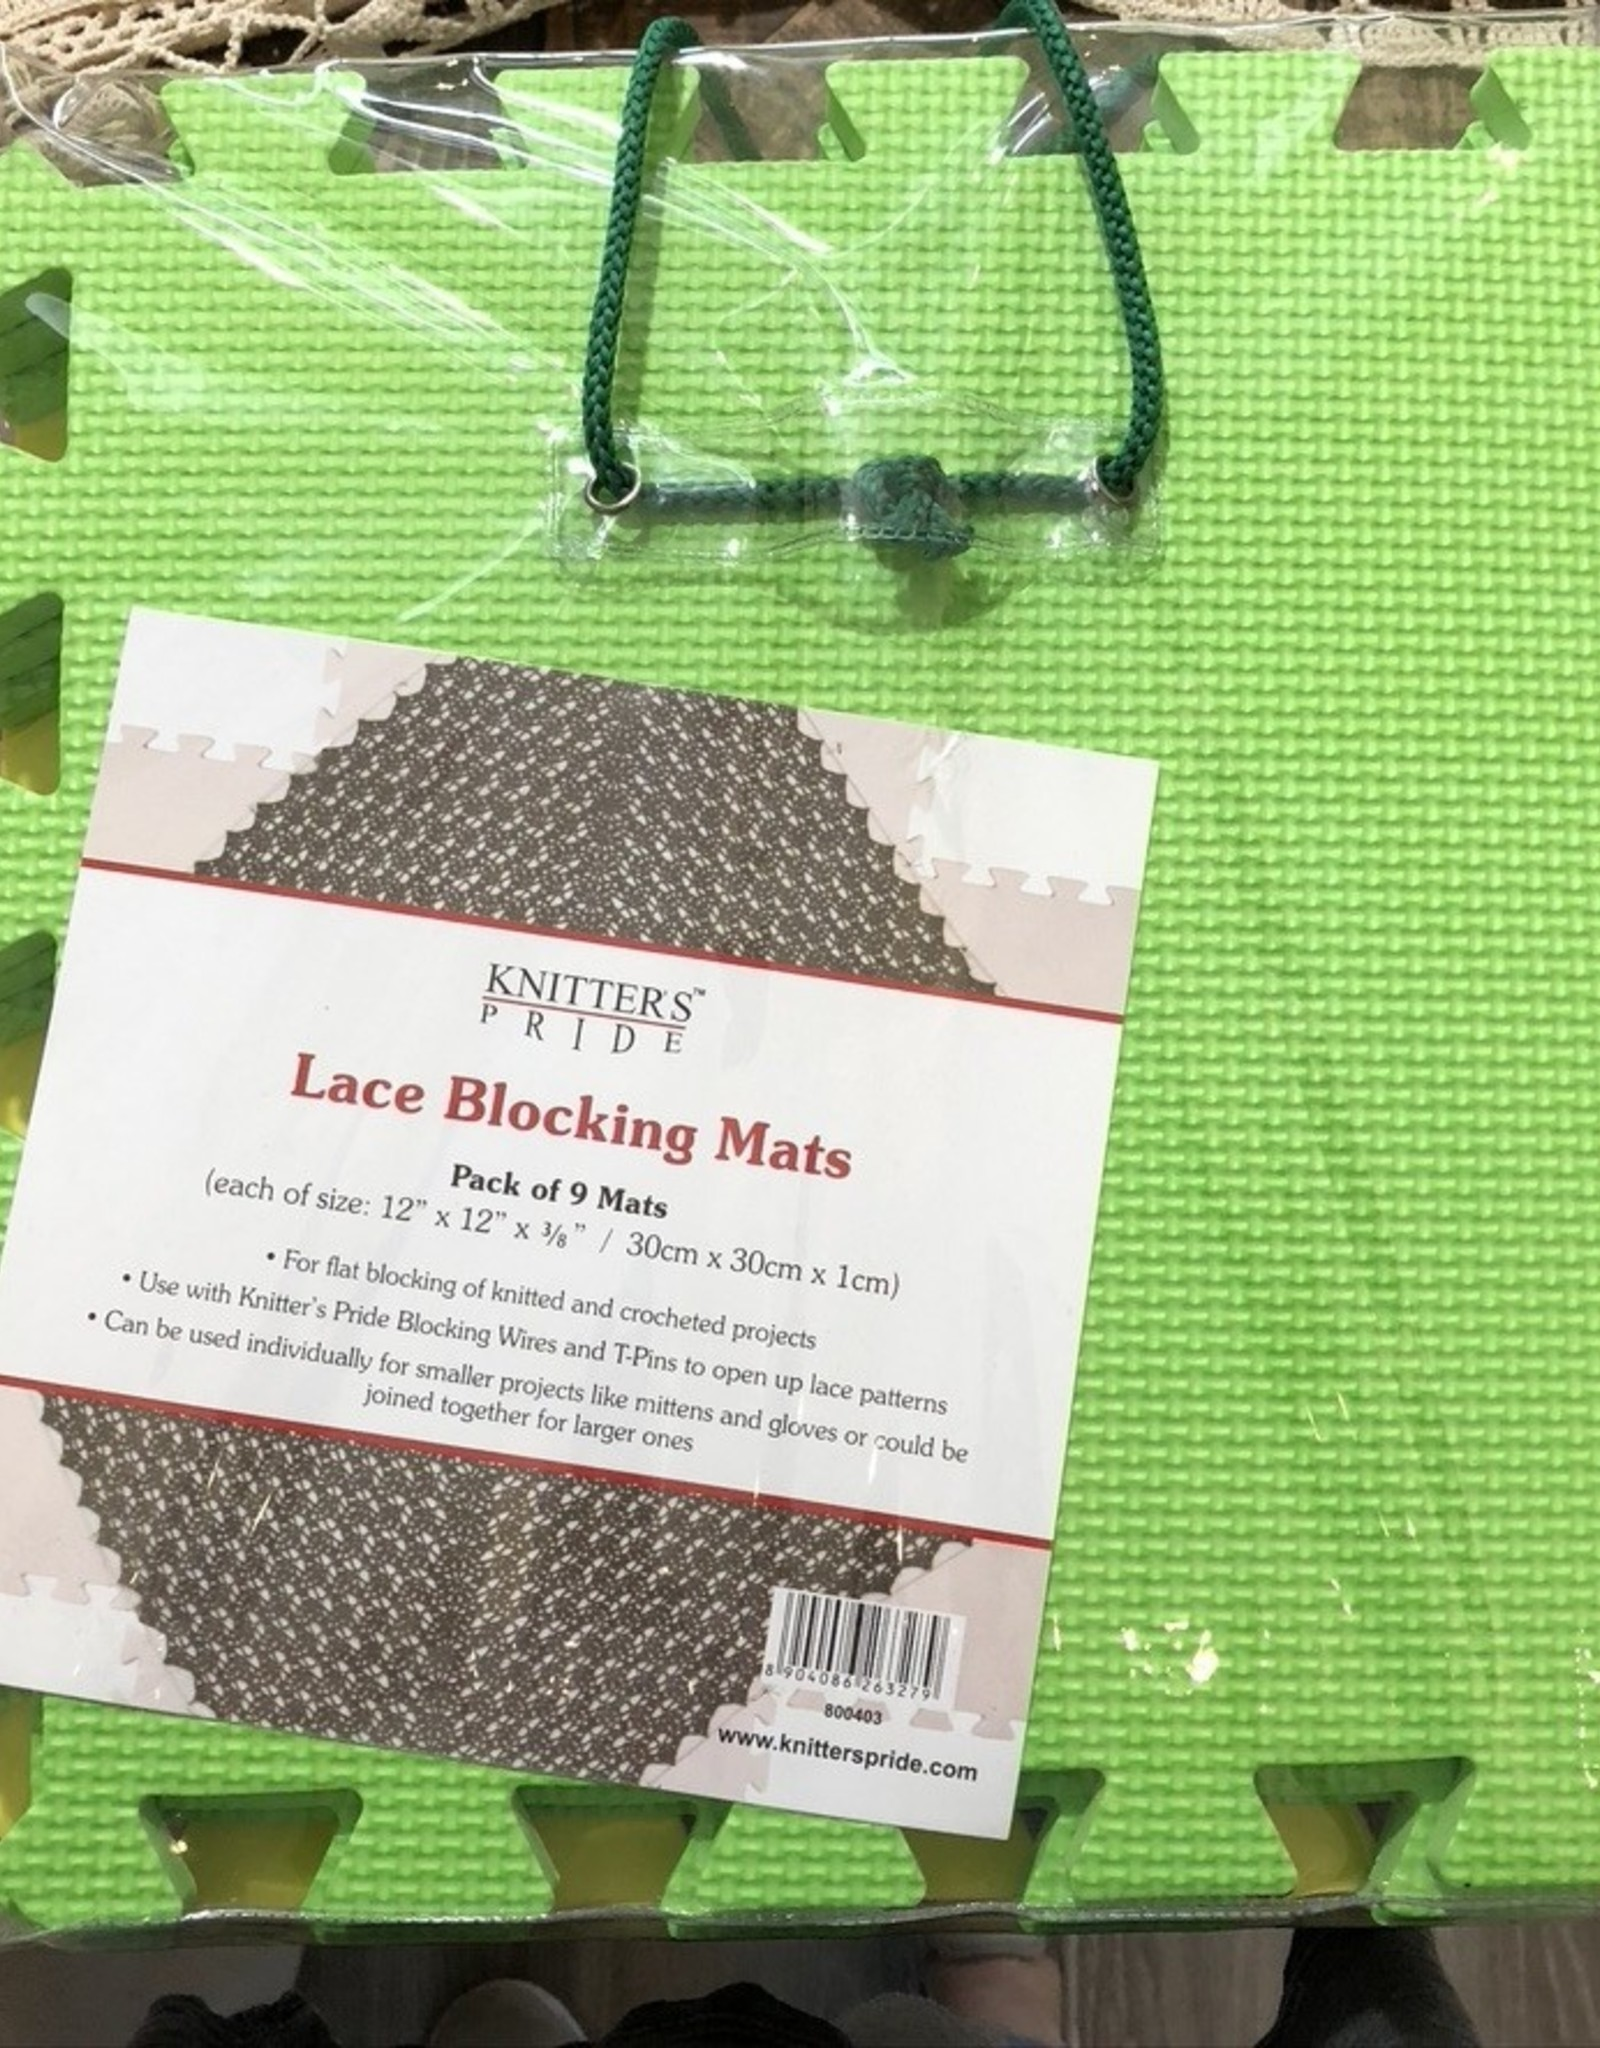 Knitters Pride Misc Tools - Lace Blocking Mats